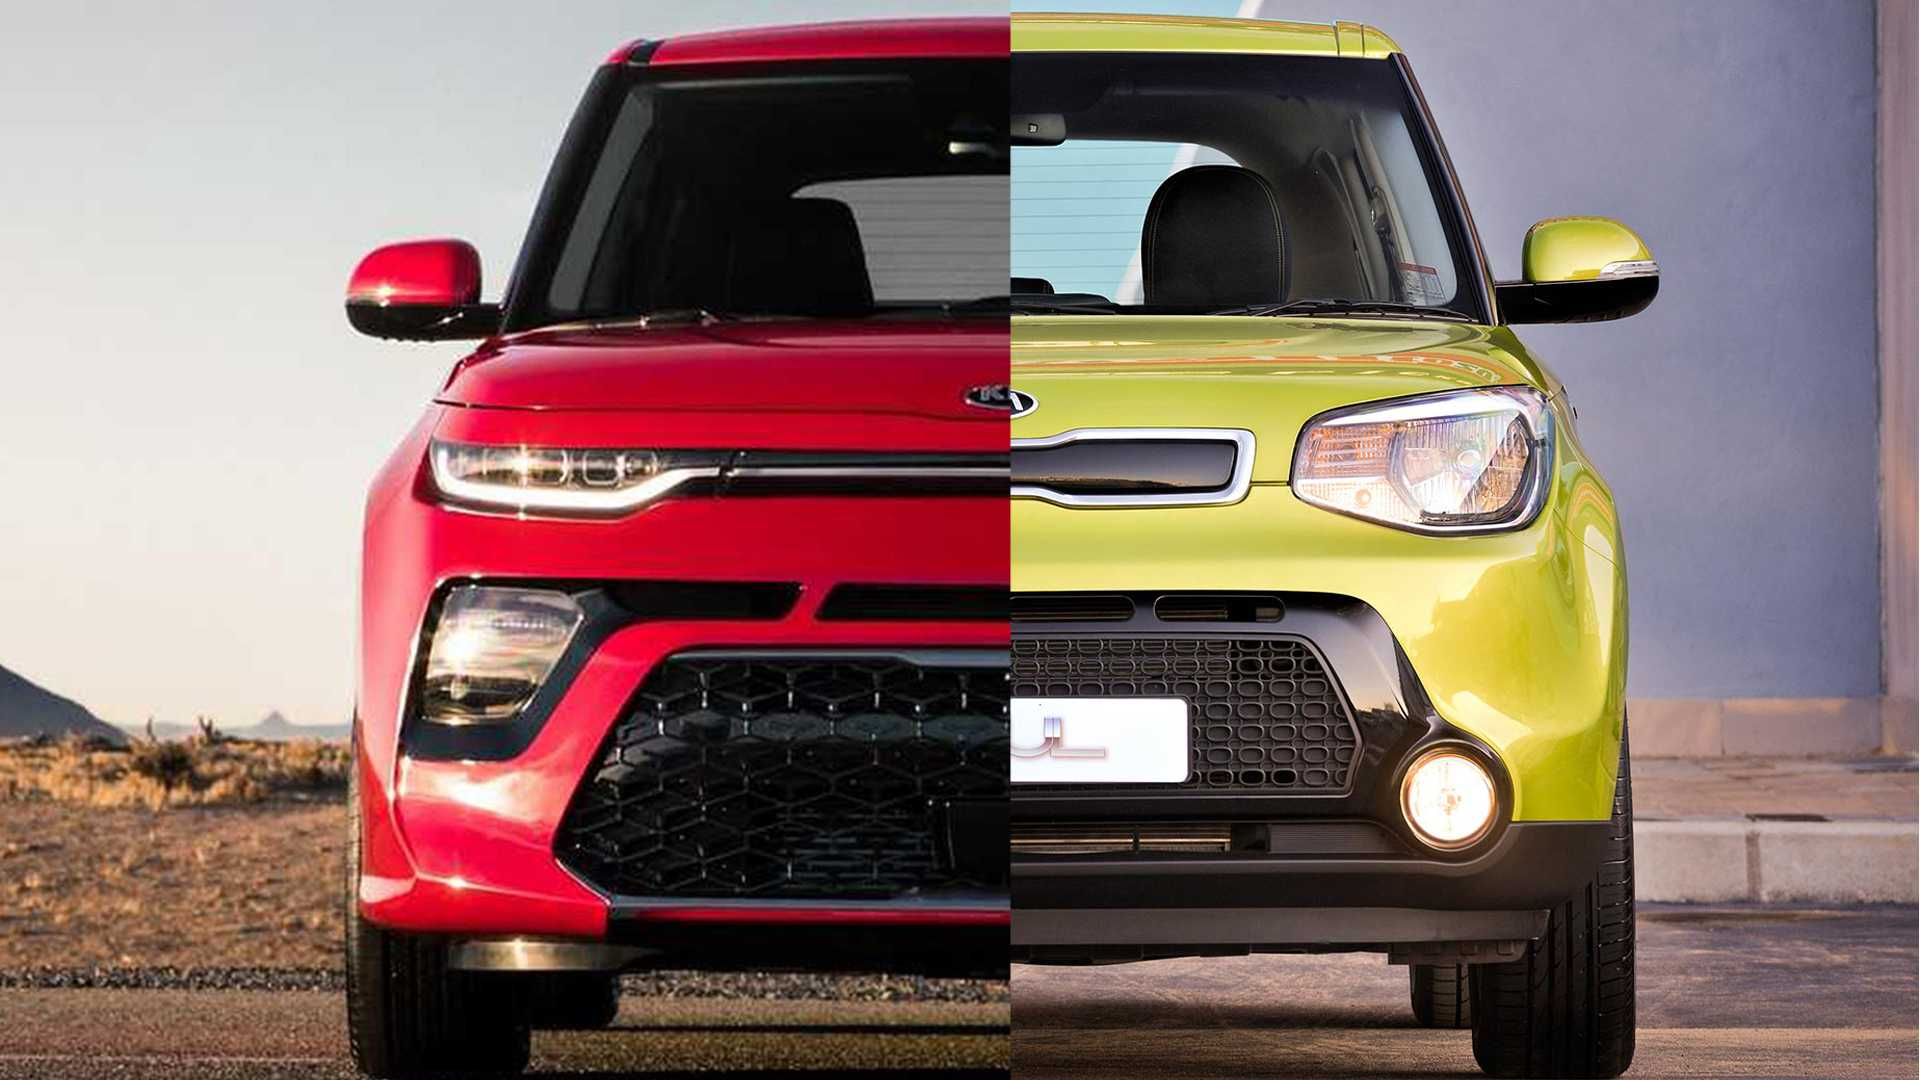 68 A 2020 Kia Soul Ev Release Date Exterior And Interior